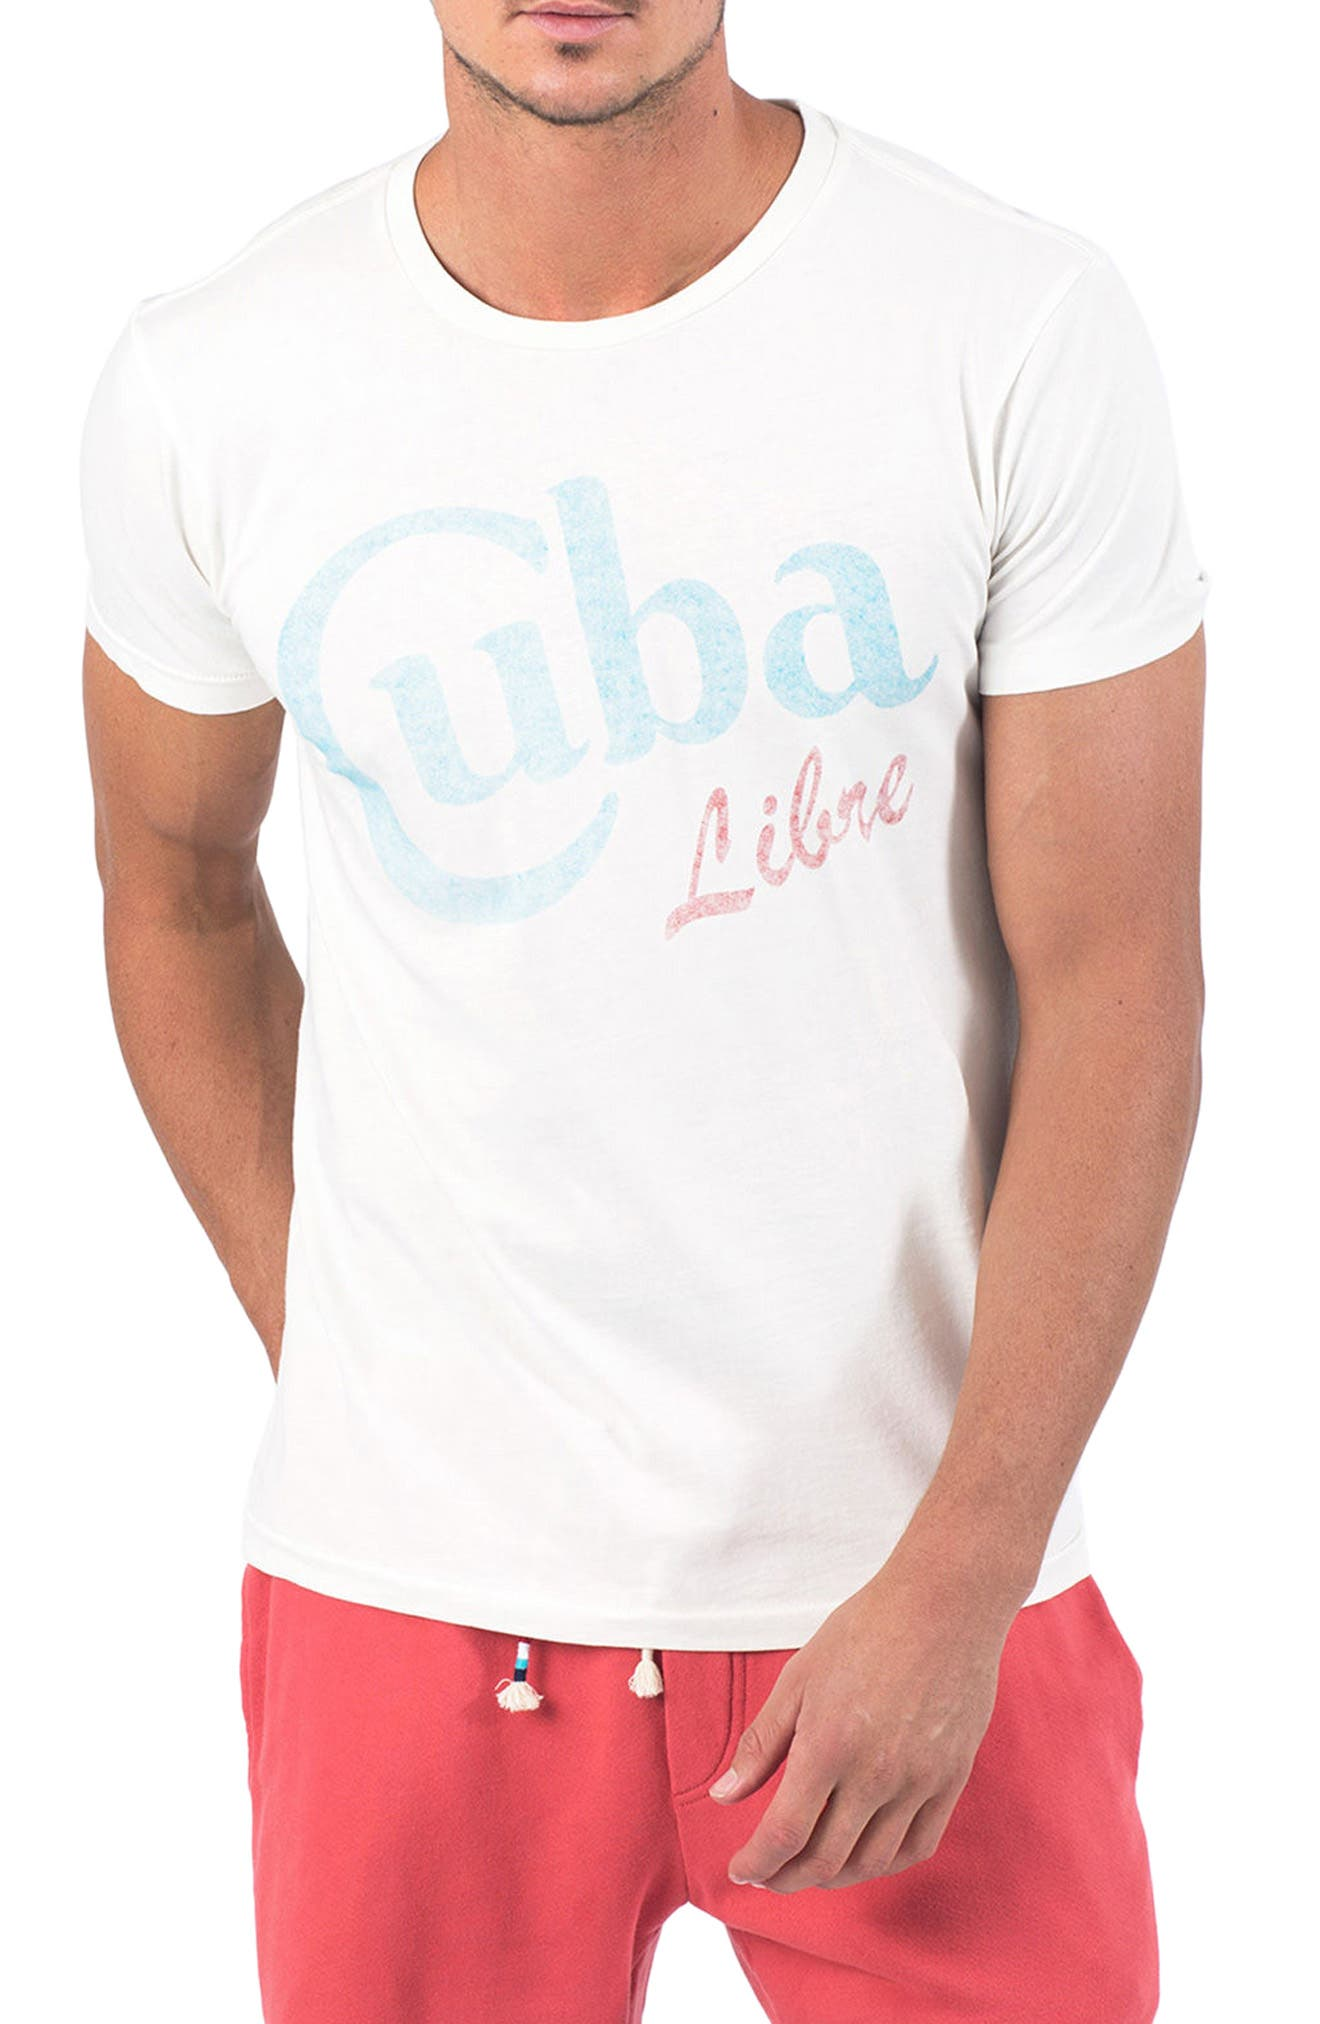 Cuba Libre T-Shirt,                             Main thumbnail 1, color,                             900